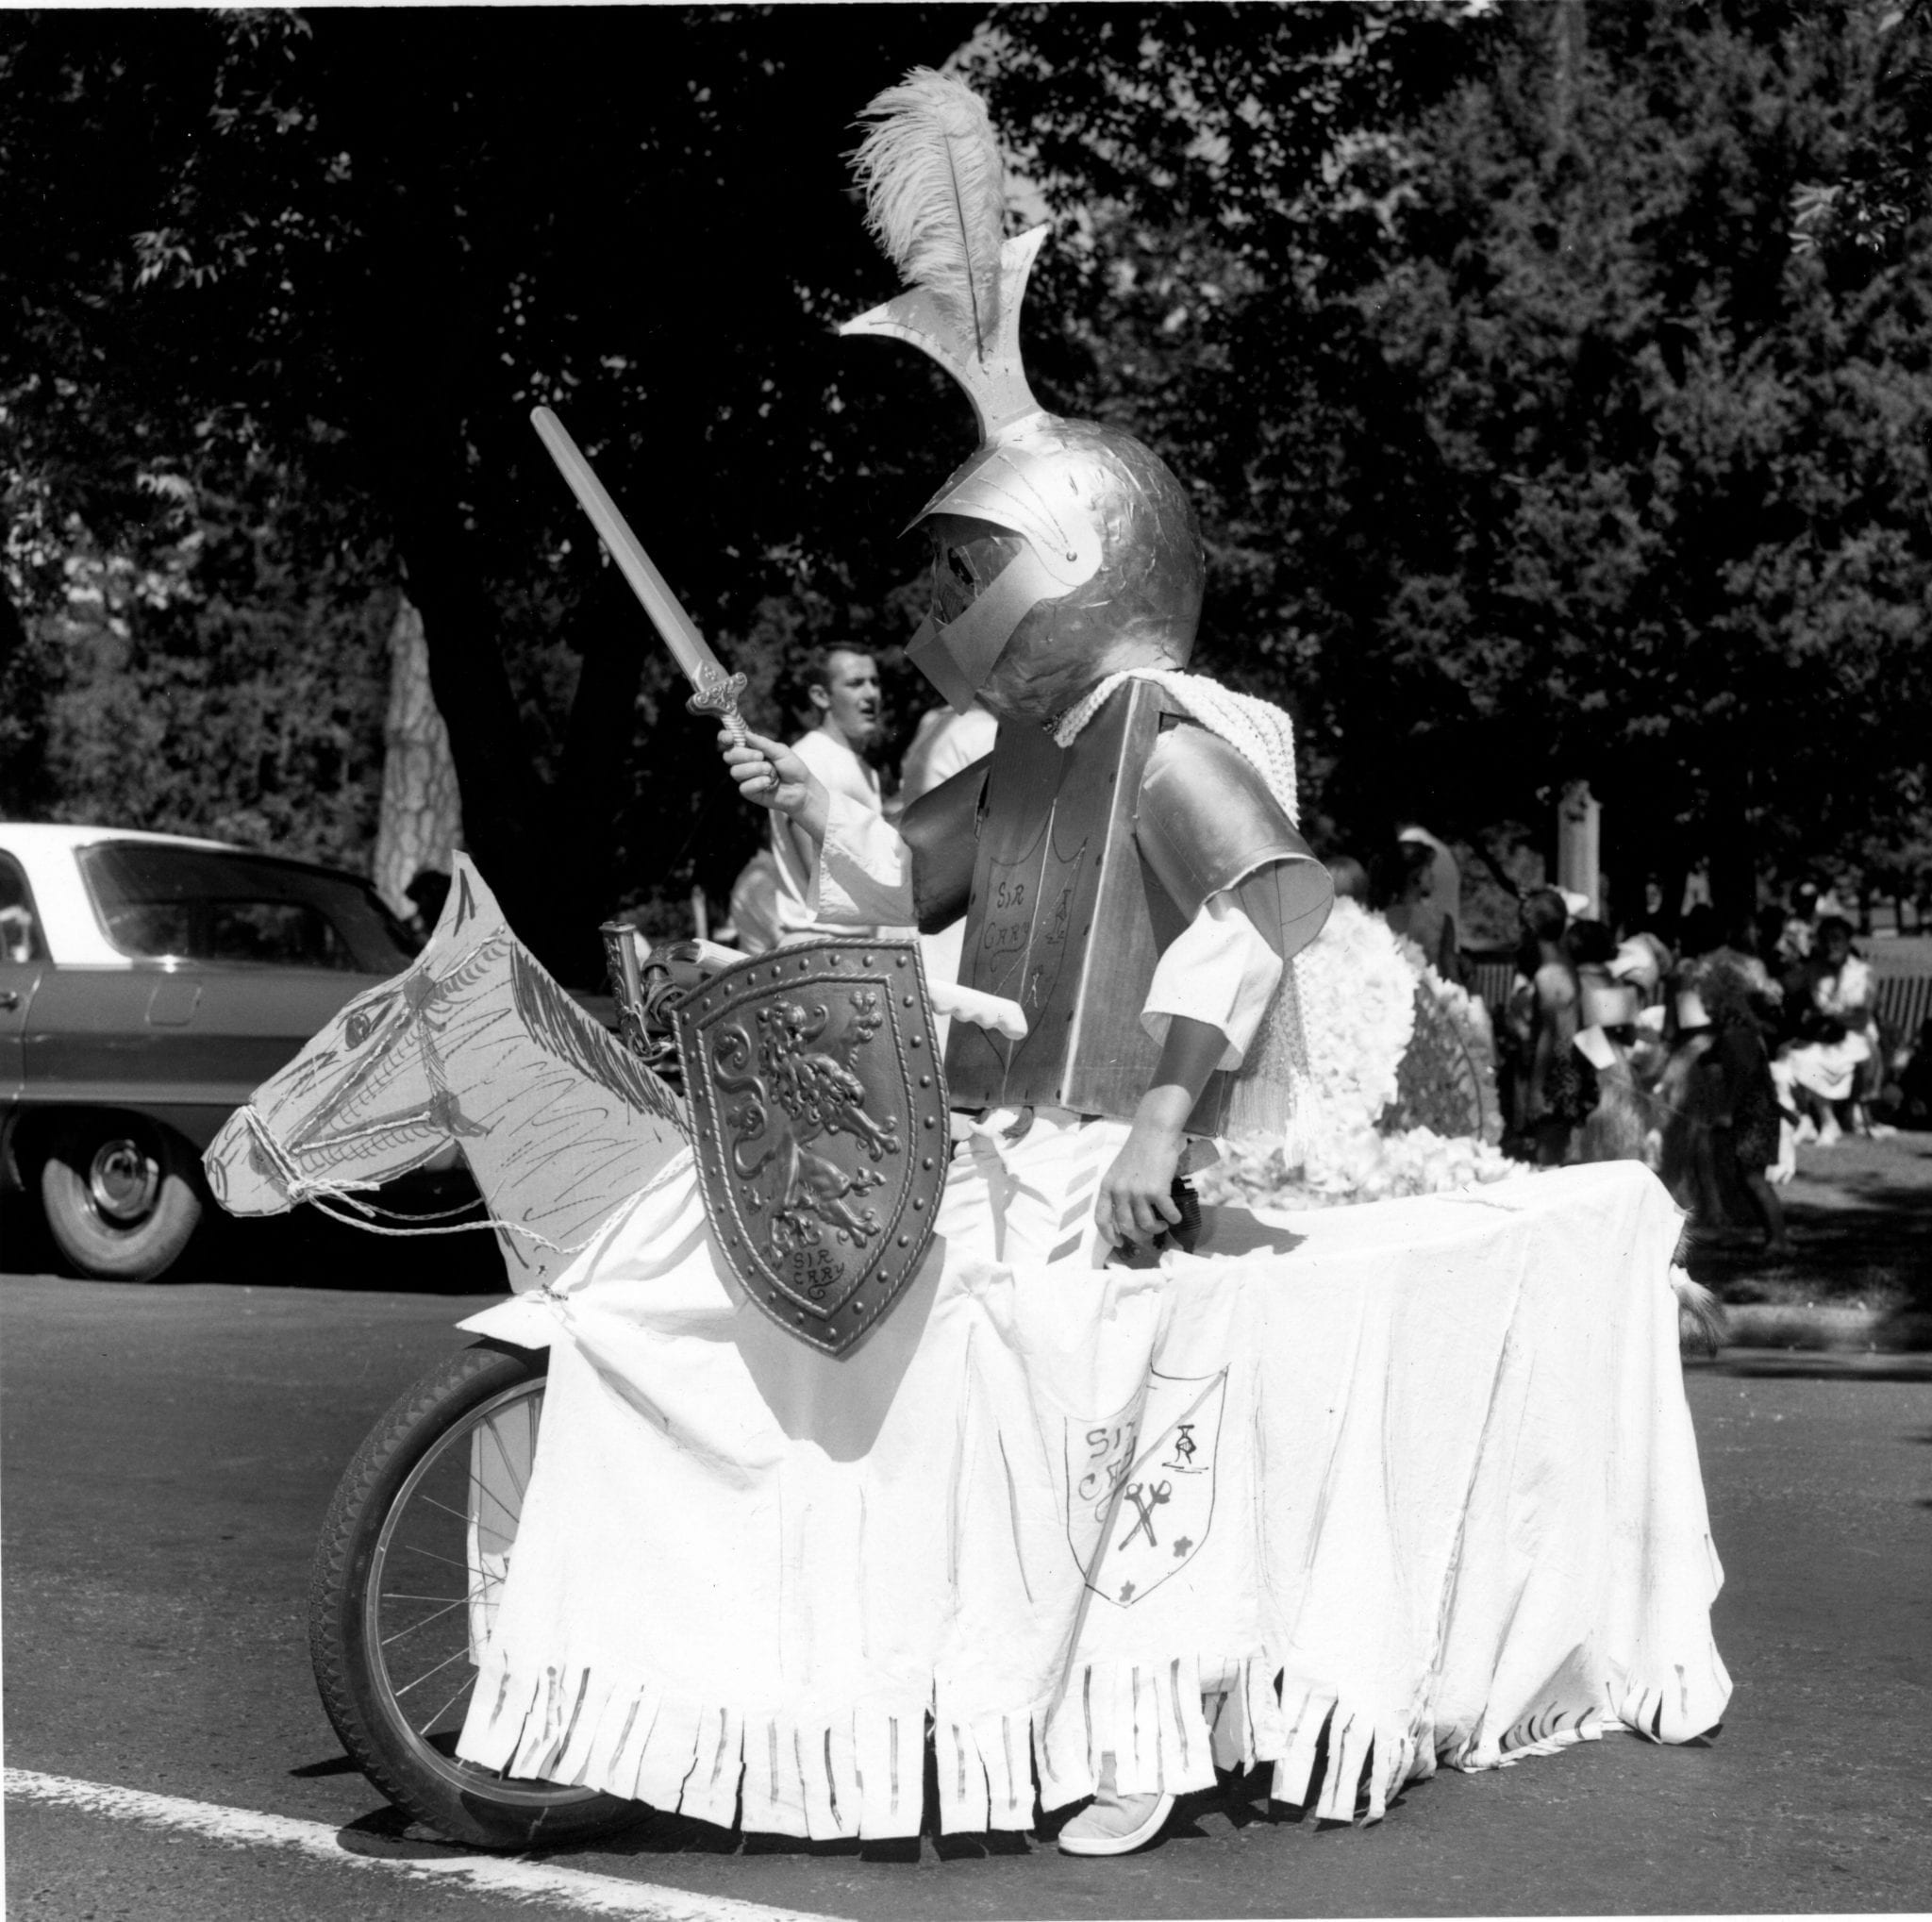 A knight in shining armor from the 1953 parade.